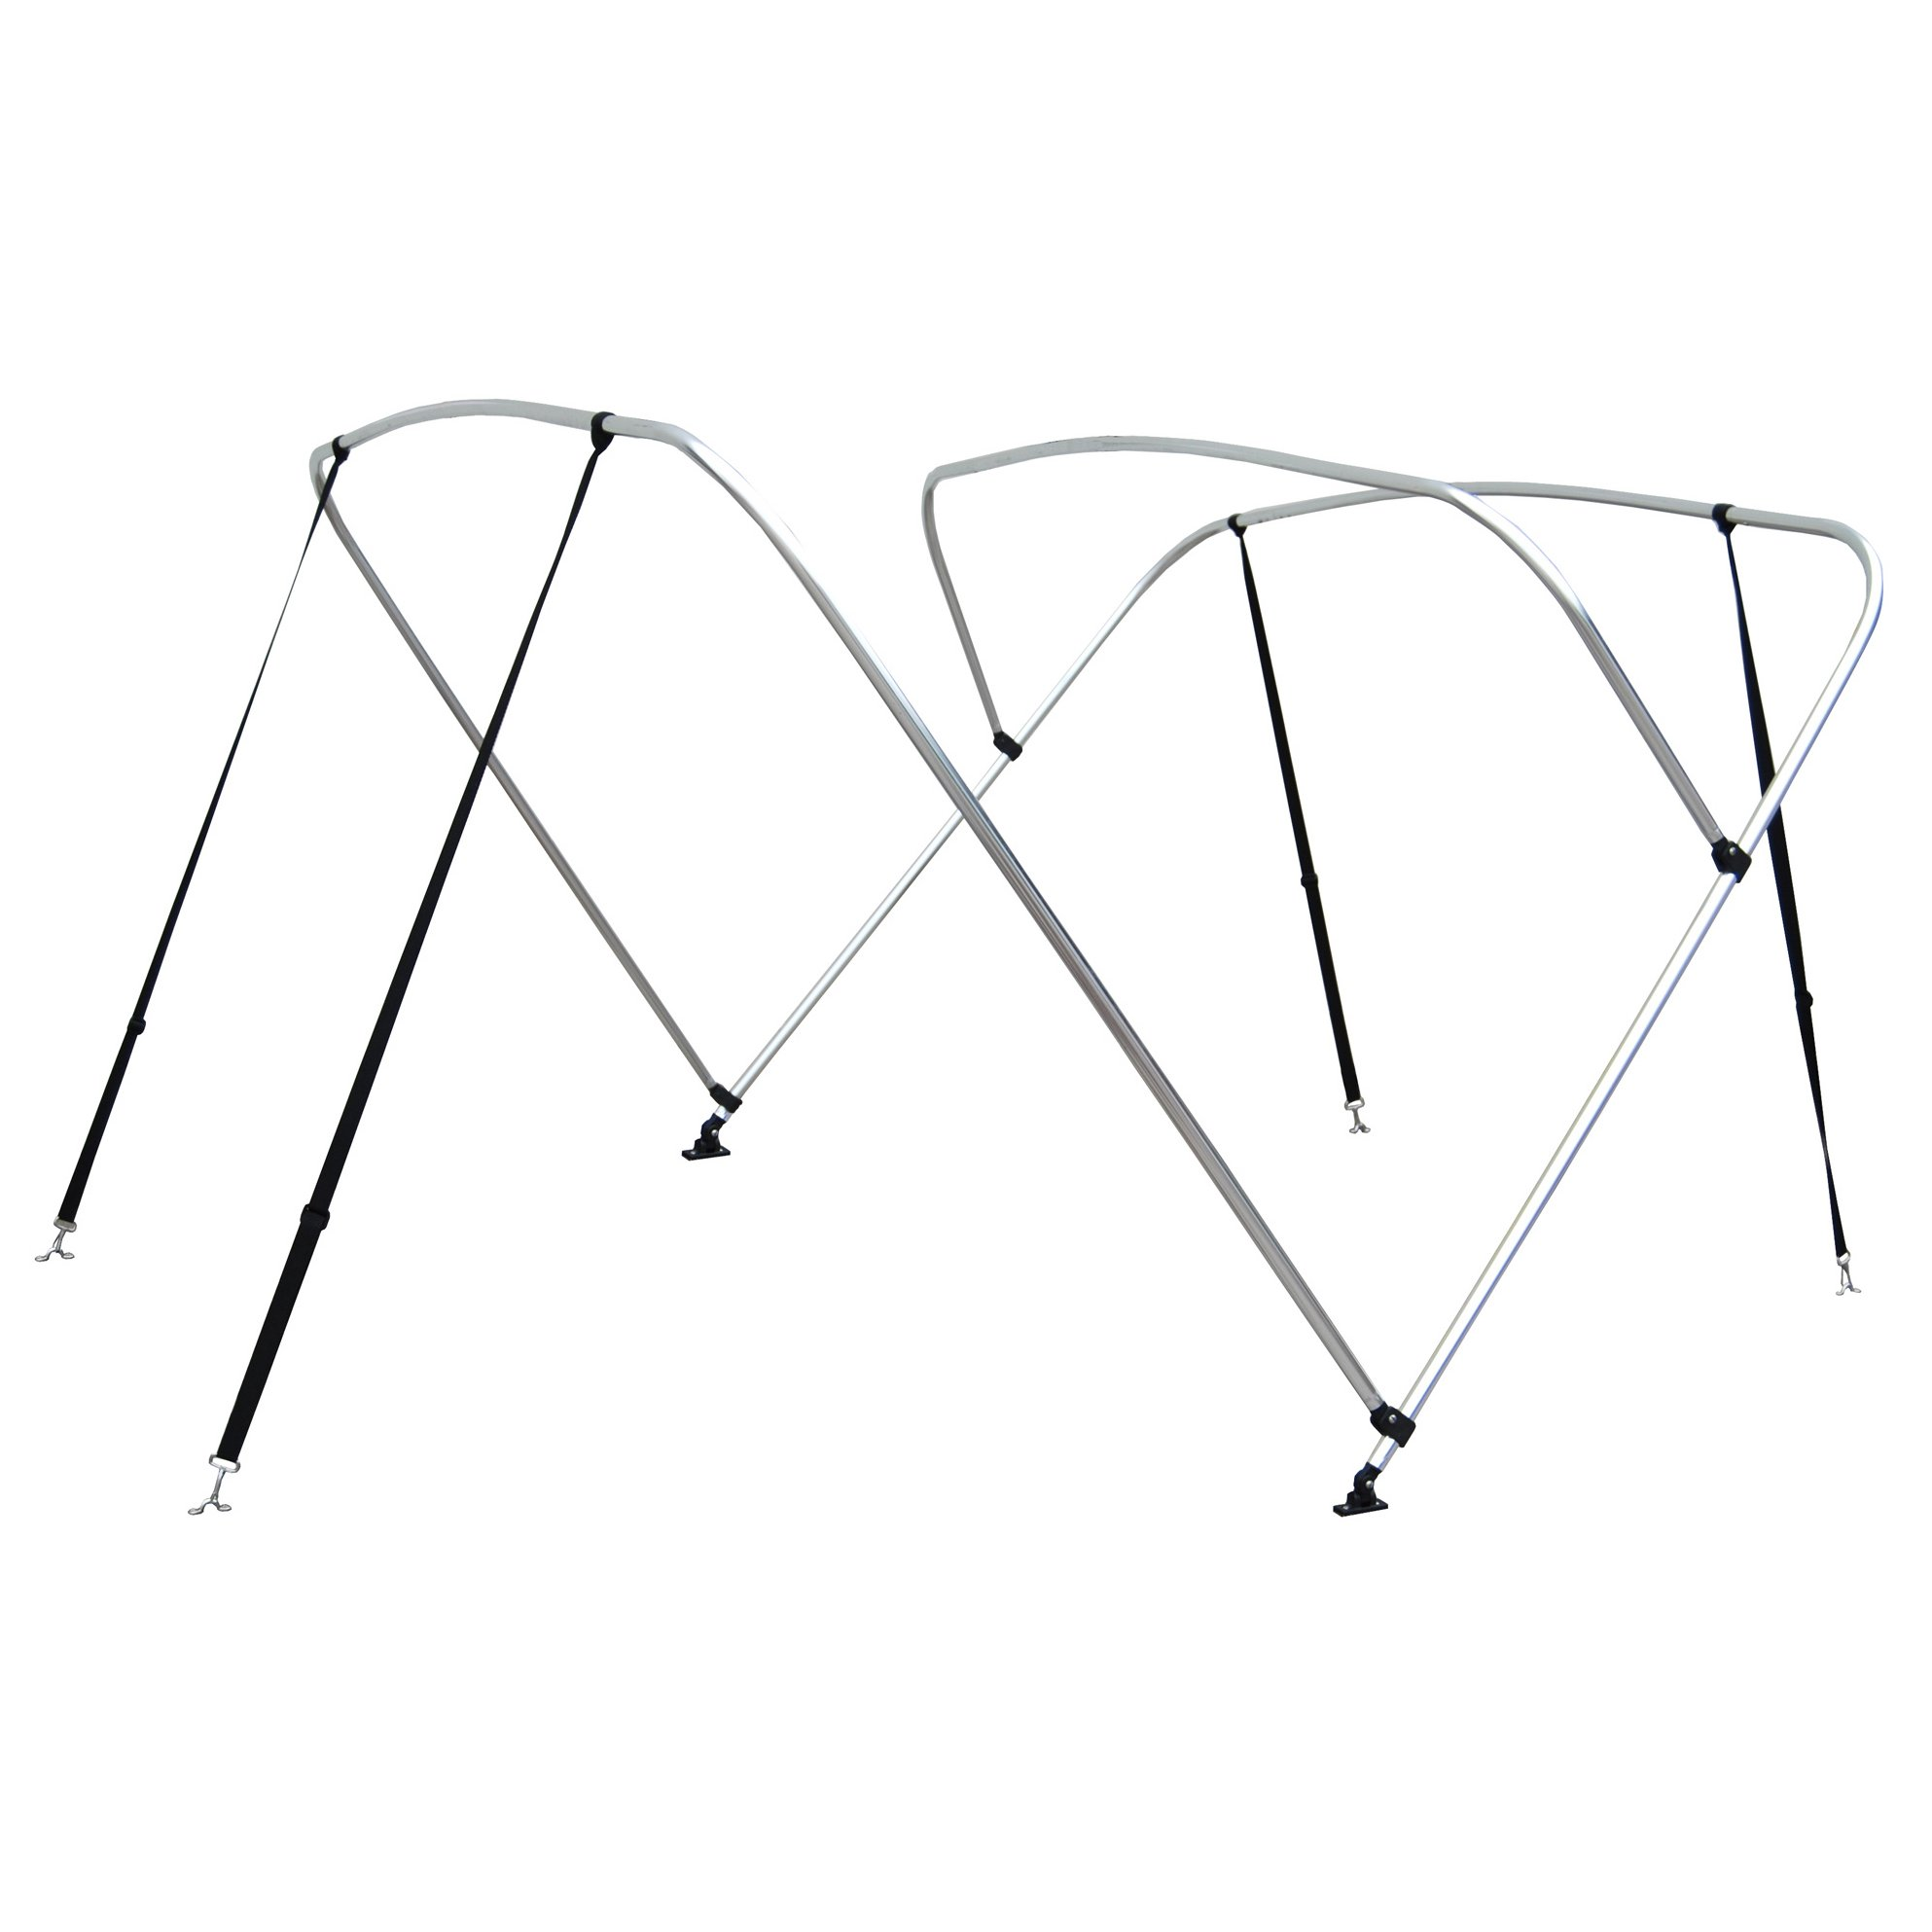 Shademate White Vinyl Stainless 4-Bow Bimini Top 8'L x 54''H 73''-78'' Wide